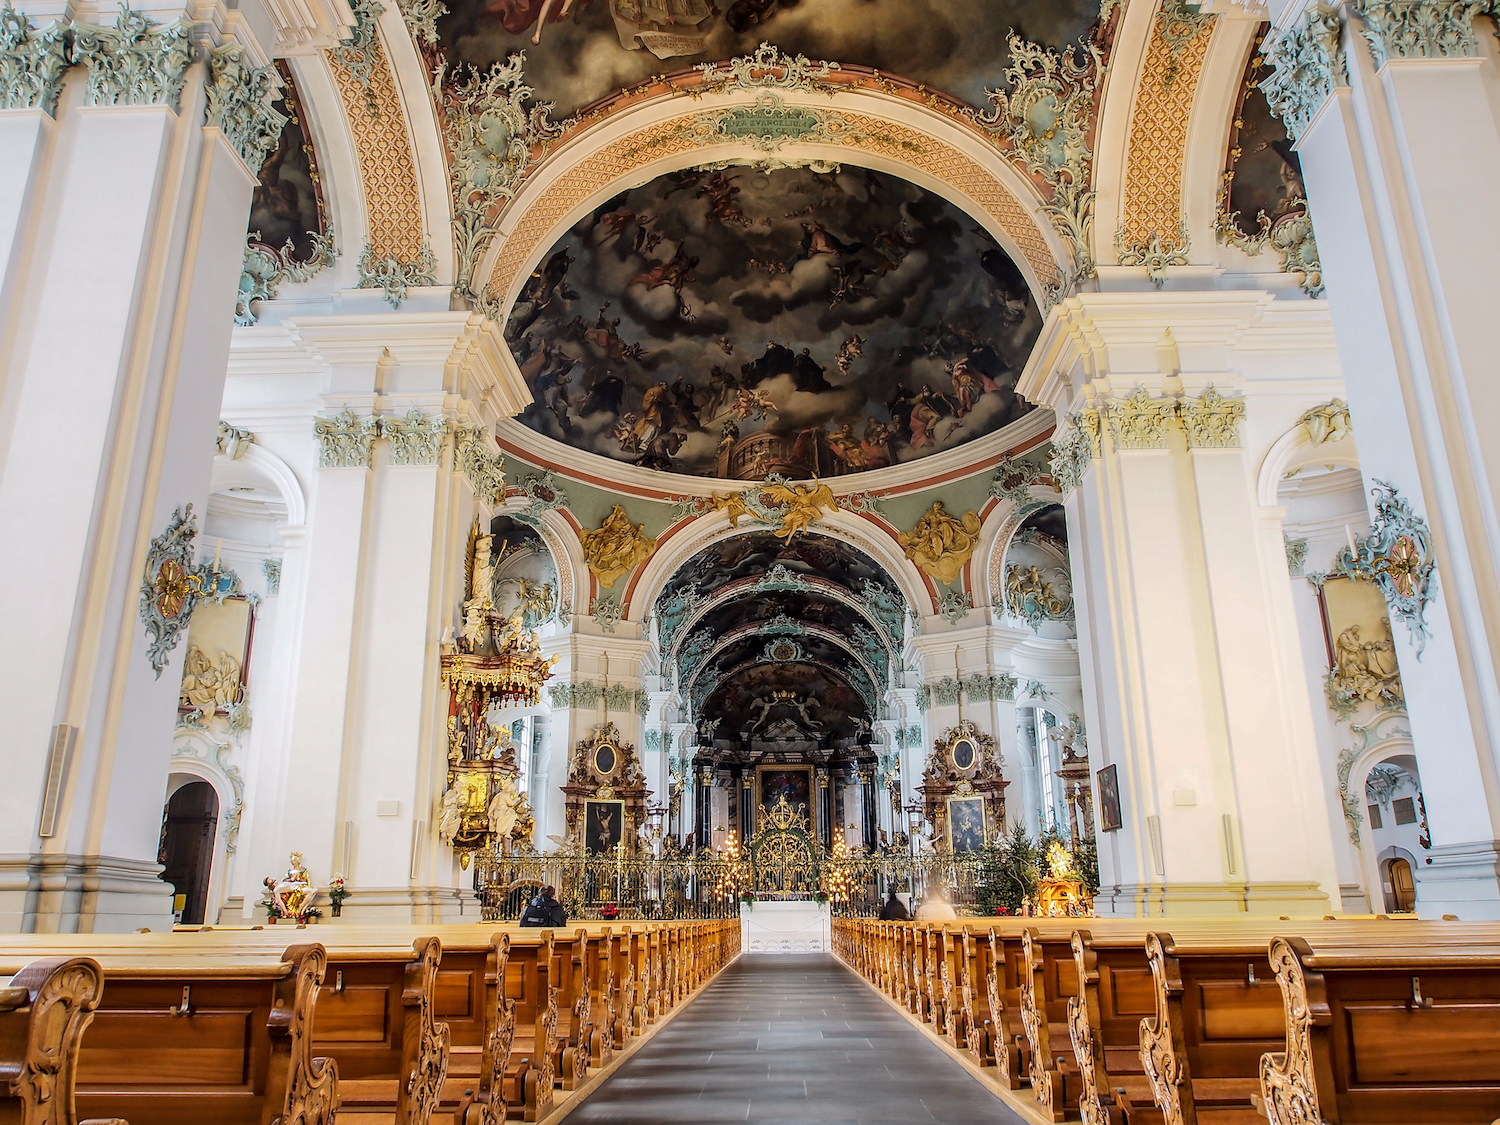 Another impressive, must-see historical site is the Abbey of St. Gall in the city of St. Gallen. The cathedral dates back to the 8th century, and has been in operation for 12 centuries.